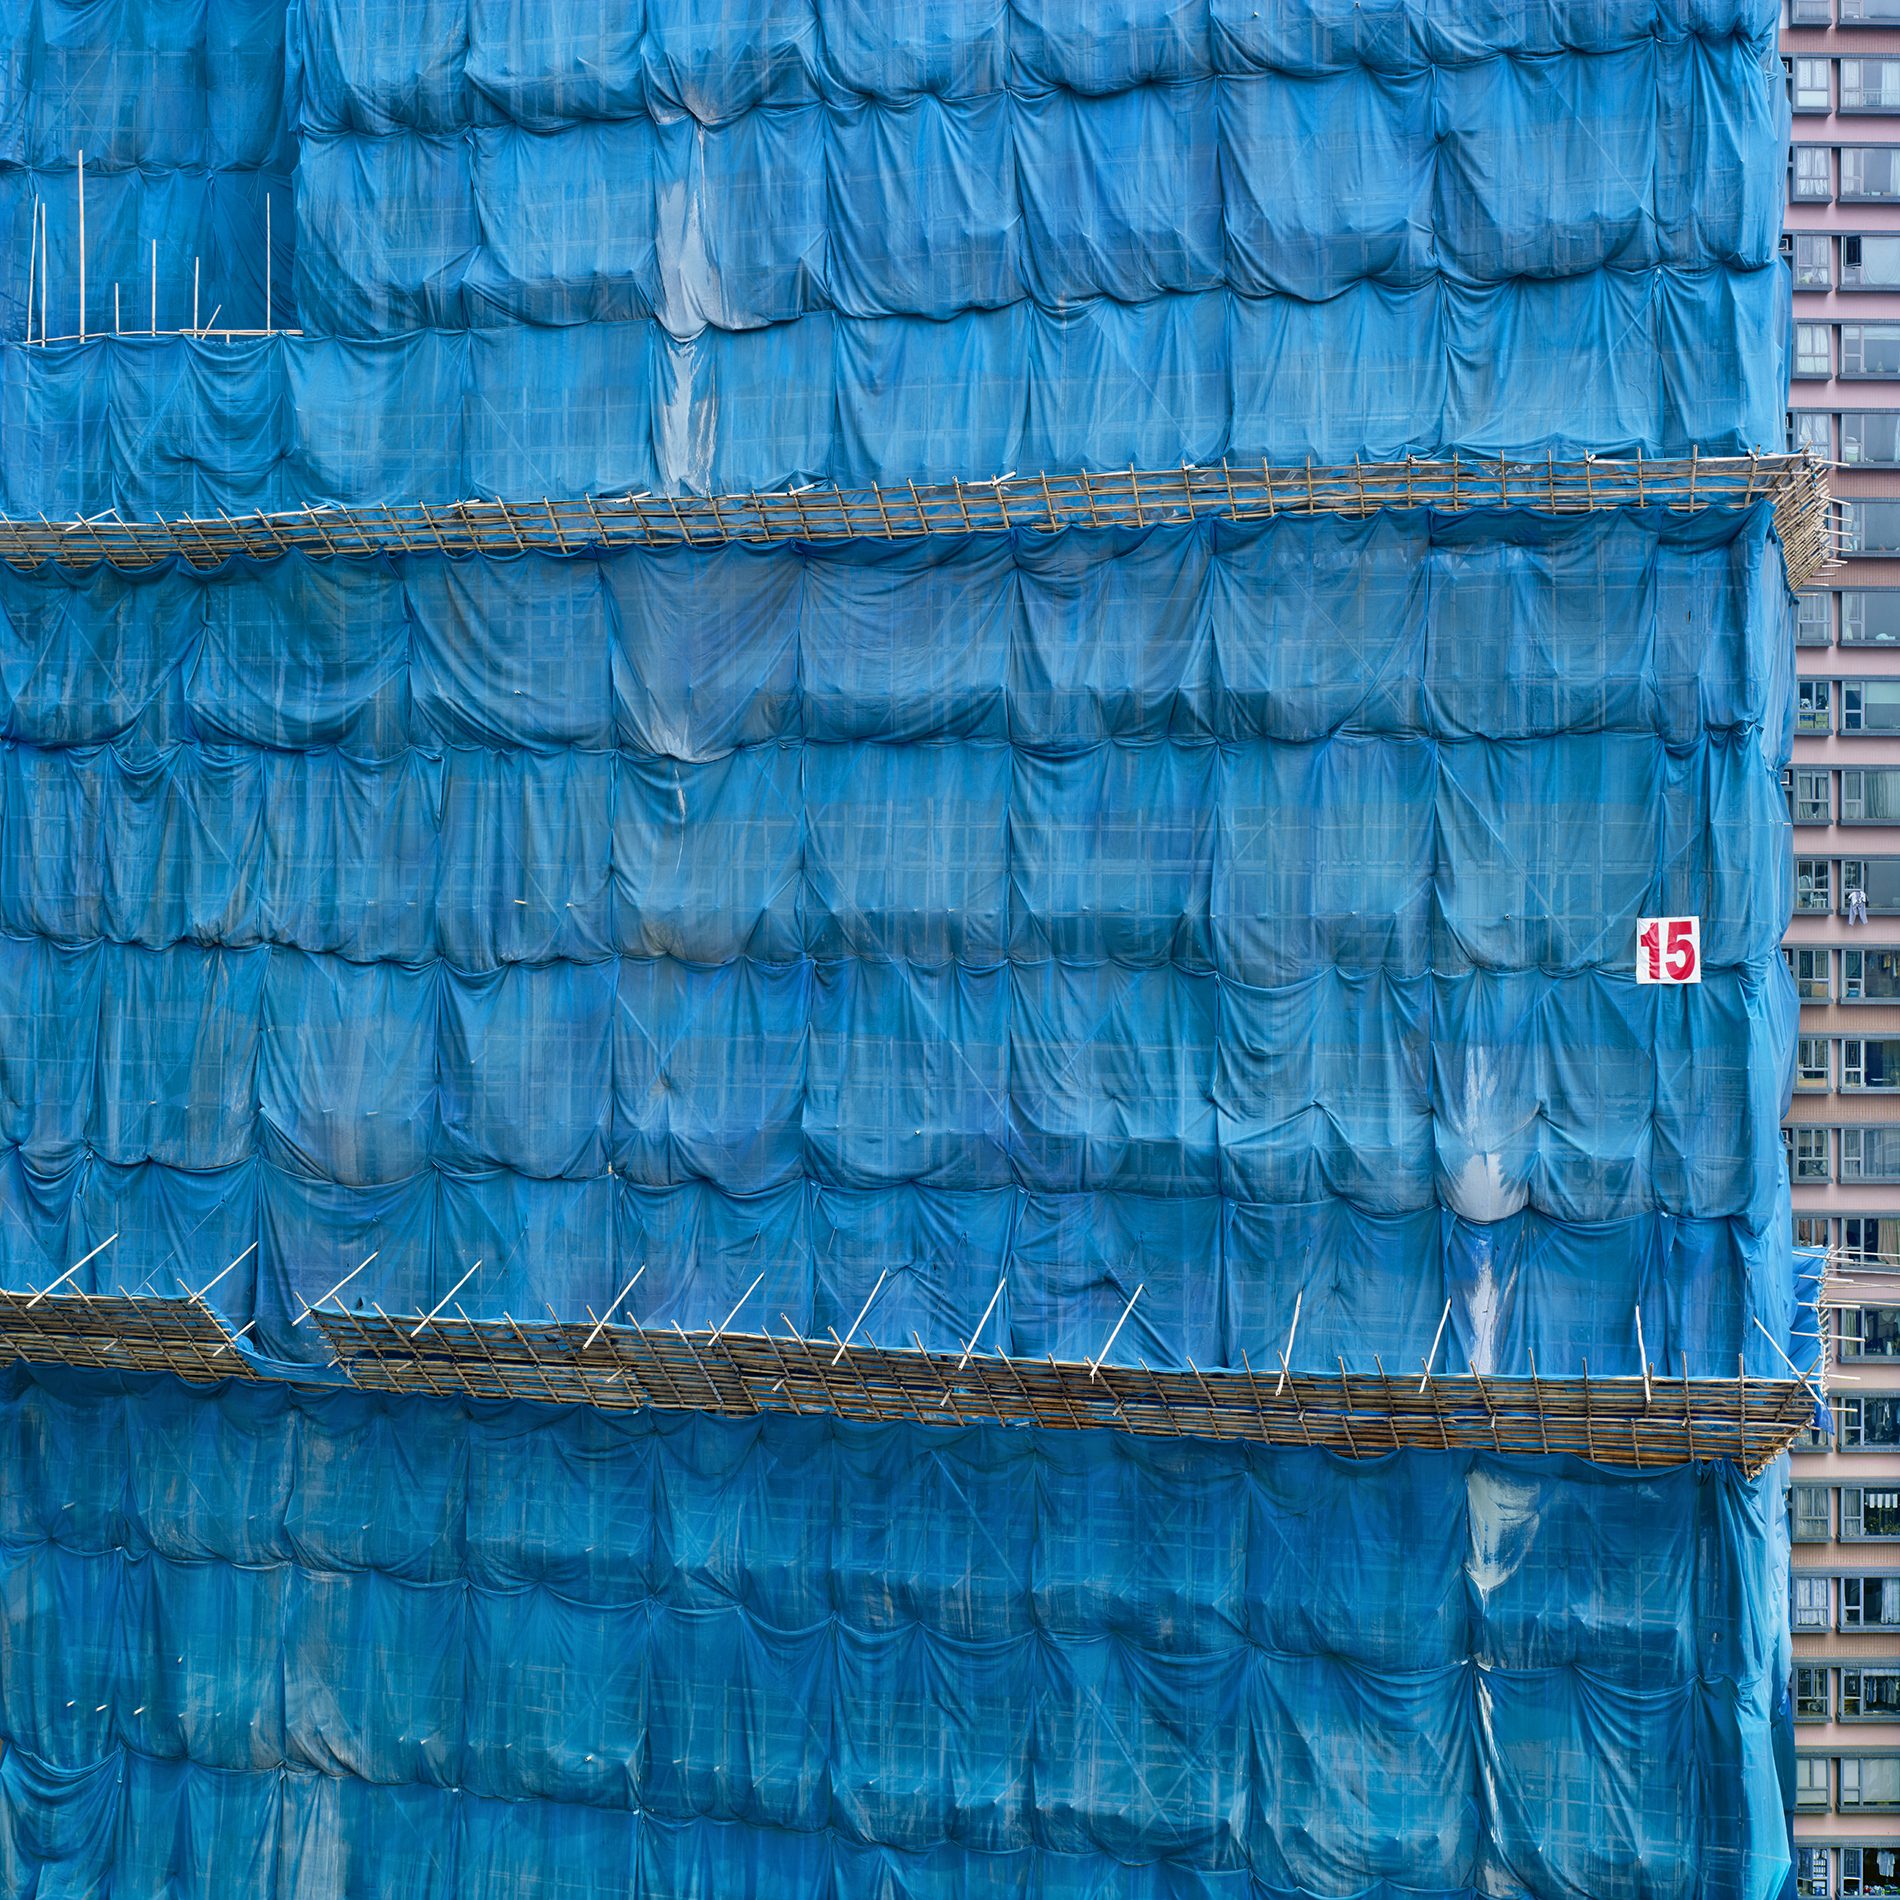 Blue Cocoon #15, Hong Kong - 2015